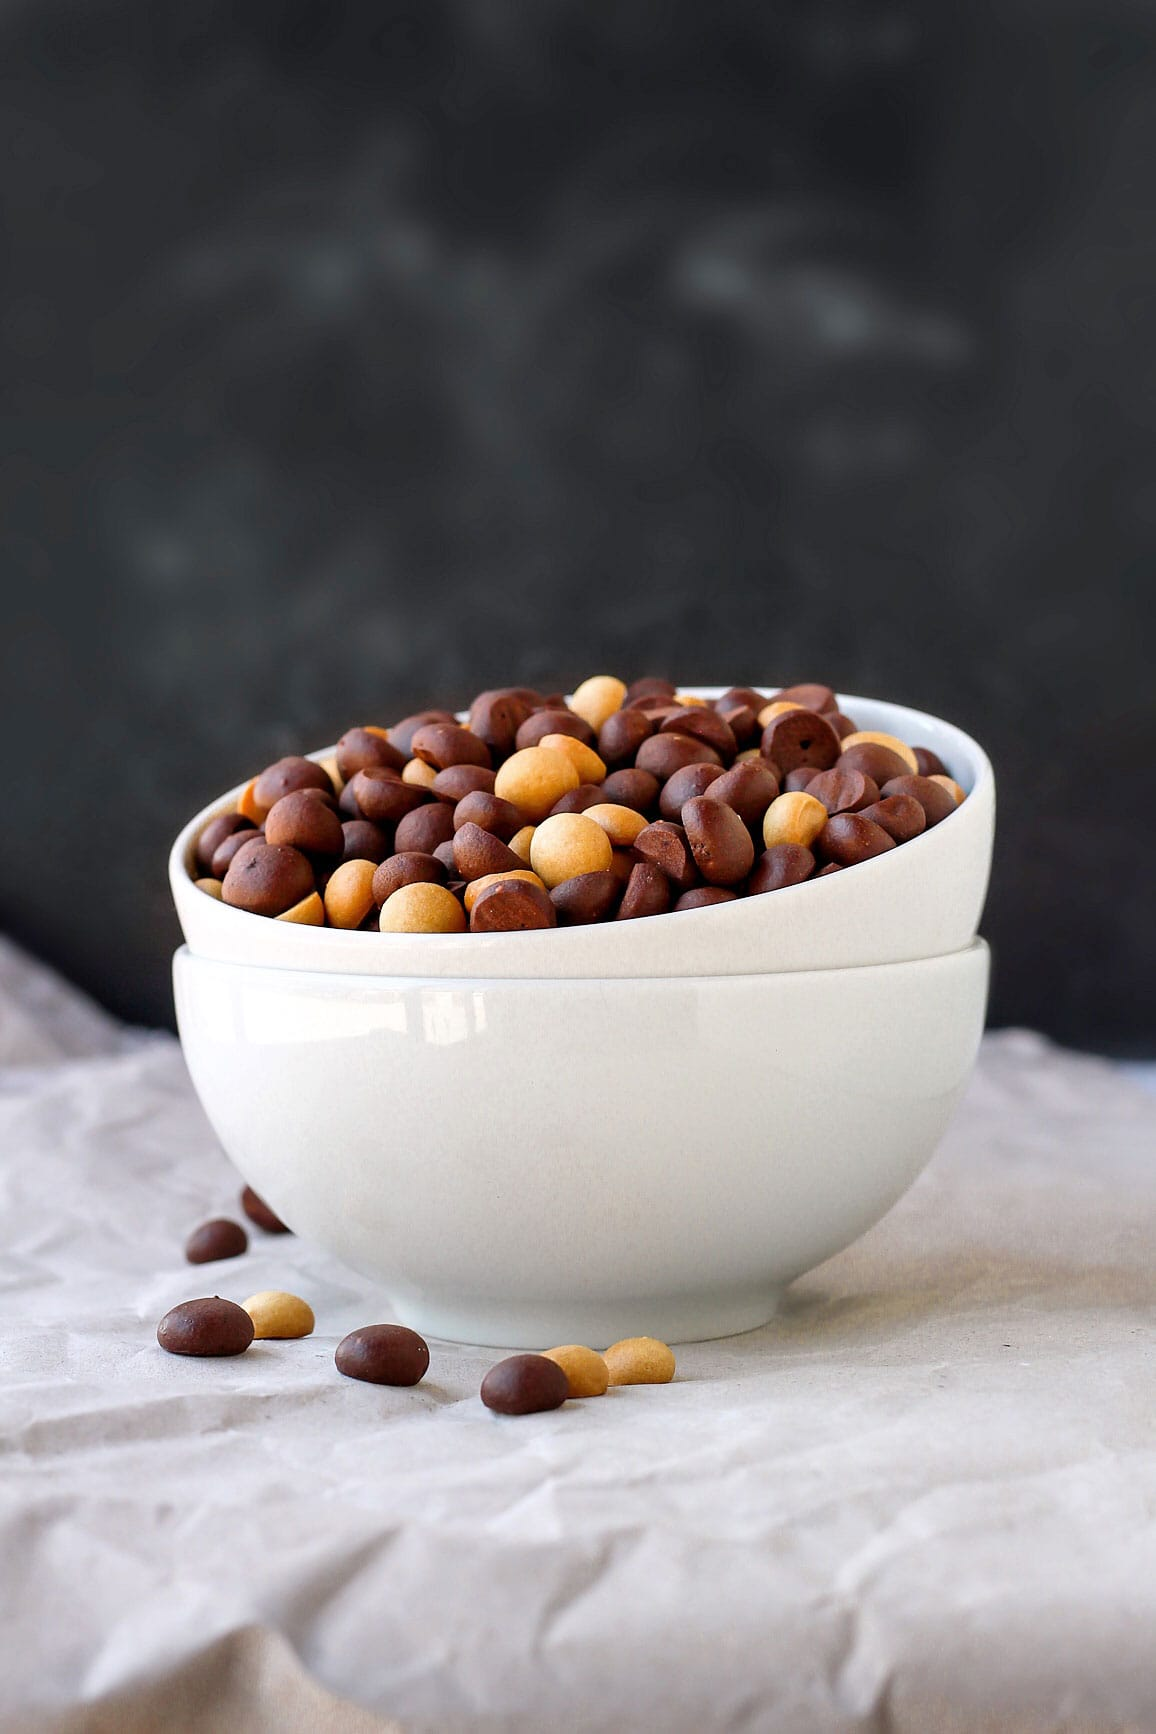 Homemade Vegan Chocolate Peanut Butter Cereals